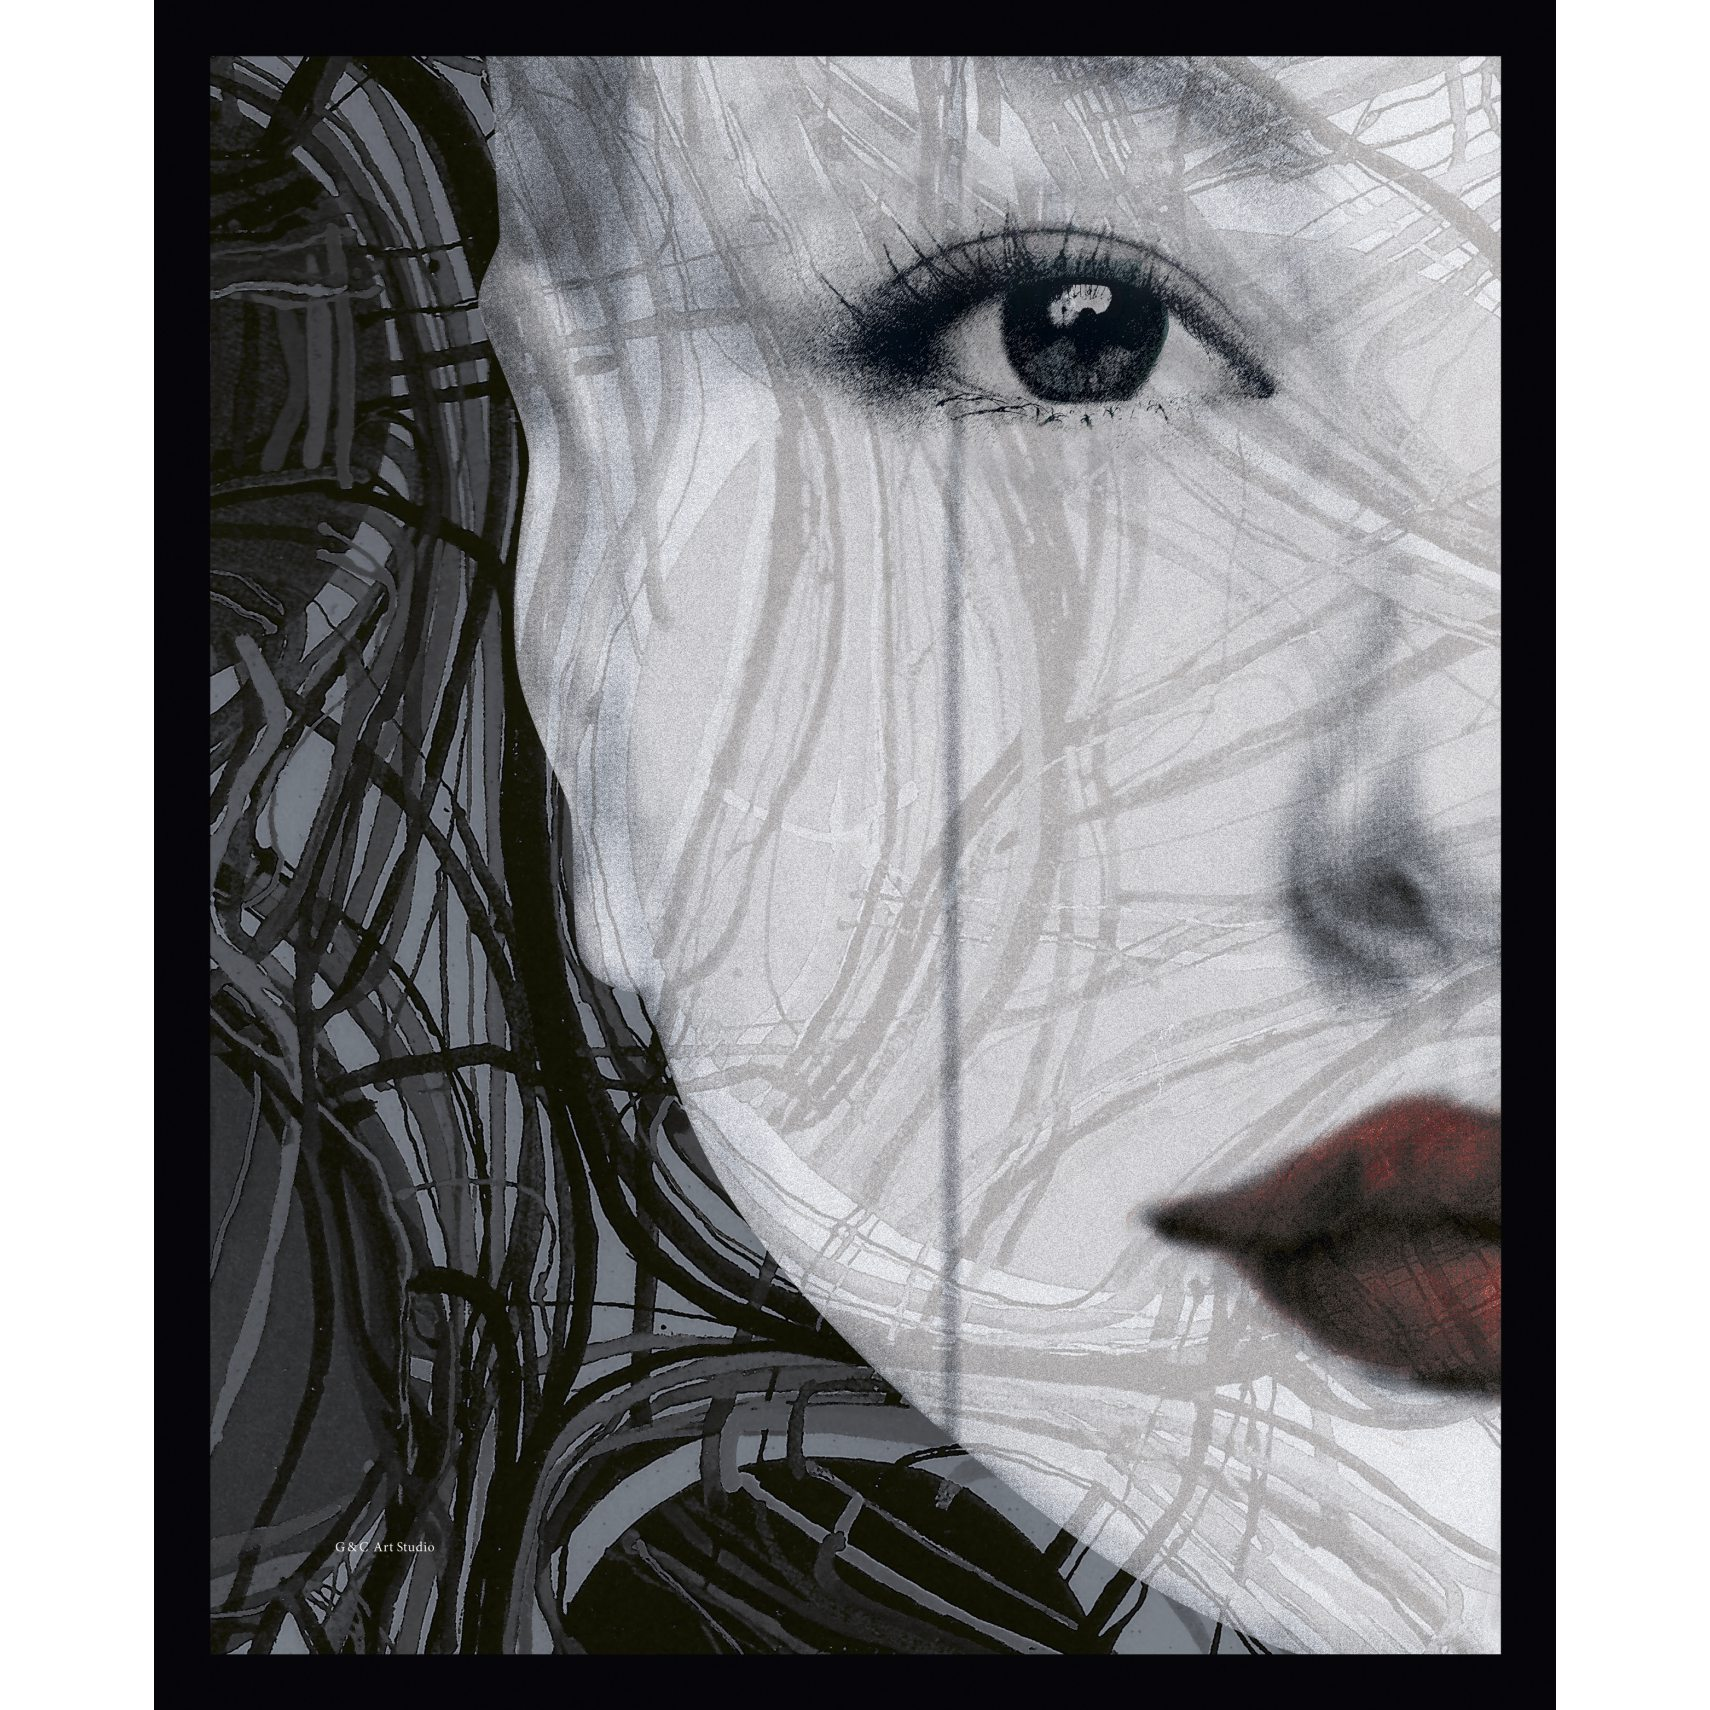 ART GALLERY Plakat 30 x 40 x 1,5 cm - Woman face left og ramme i 15 mm sort fyrretræ